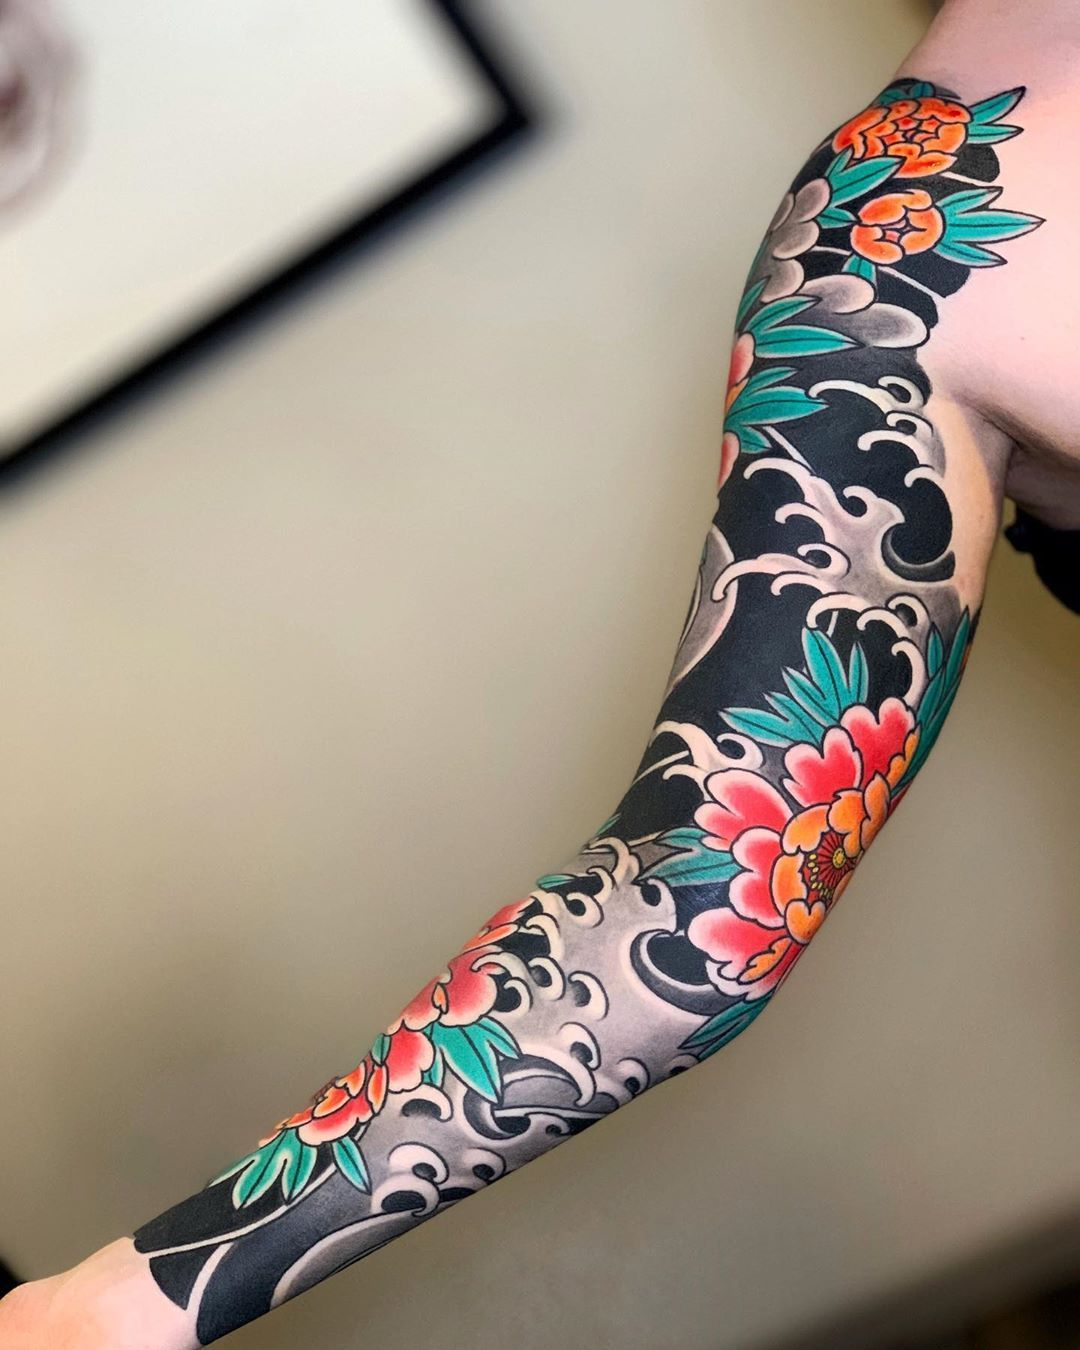 Inspirational Japanese tattoos samples